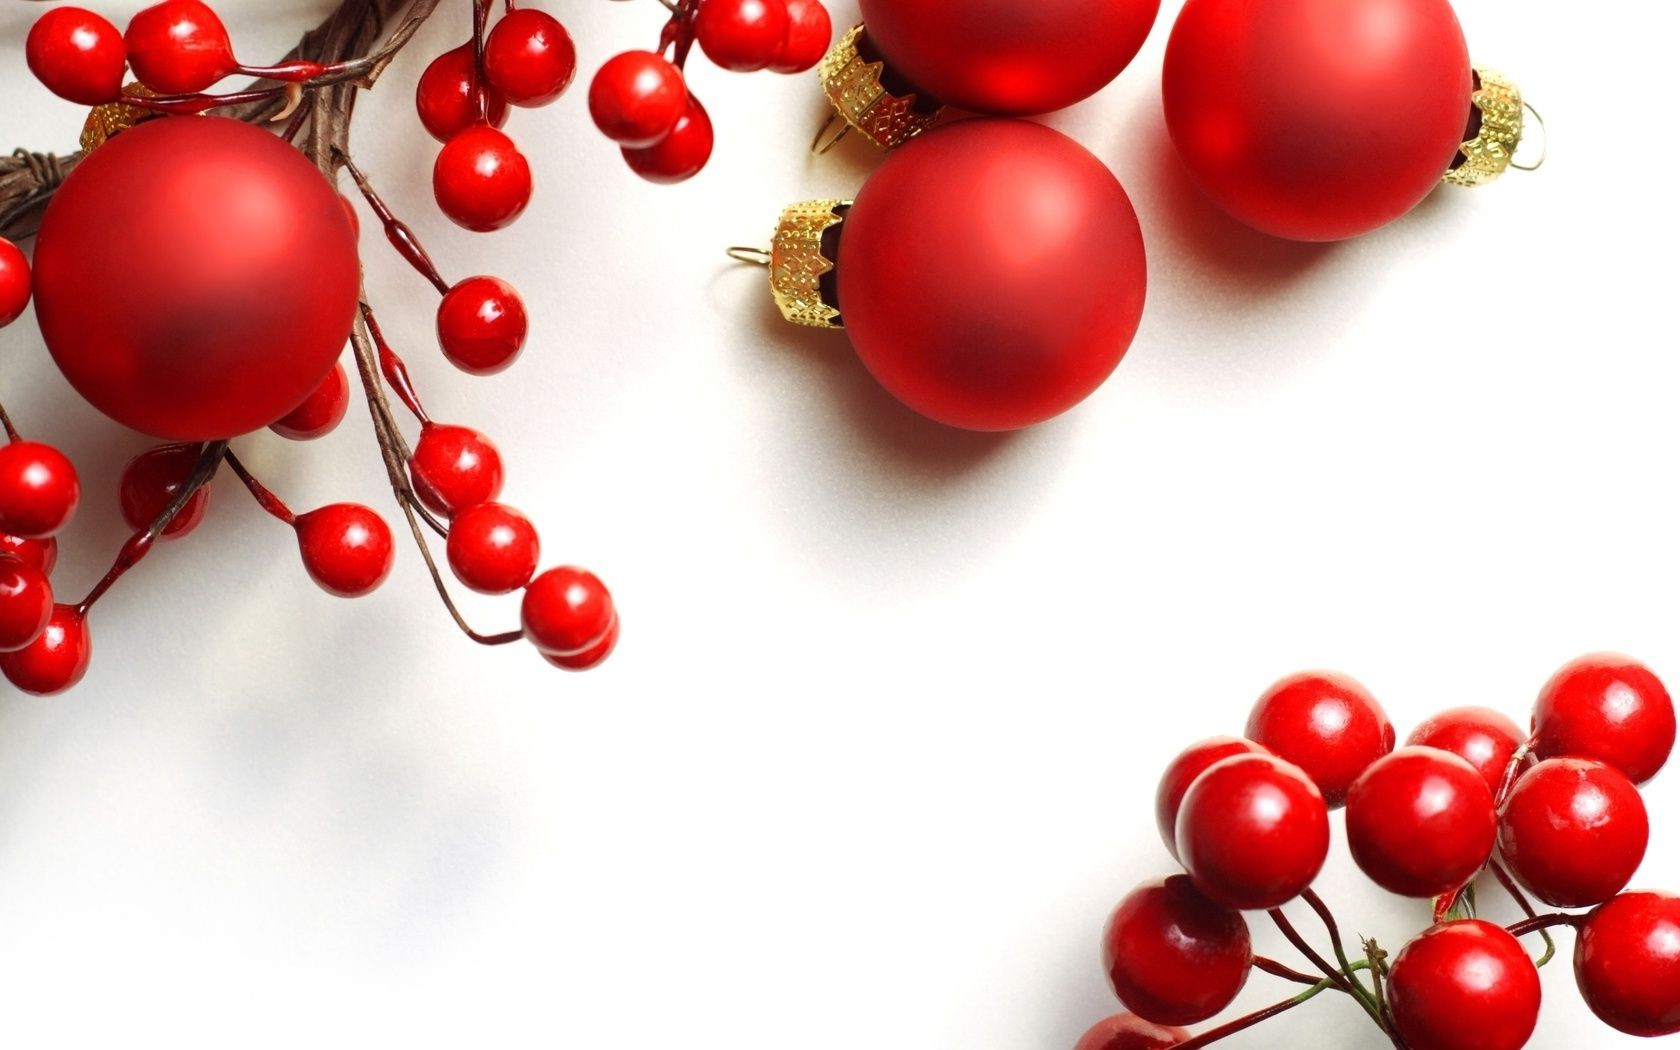 Christmas balls bulbs red. iPhone wallpapers for free.